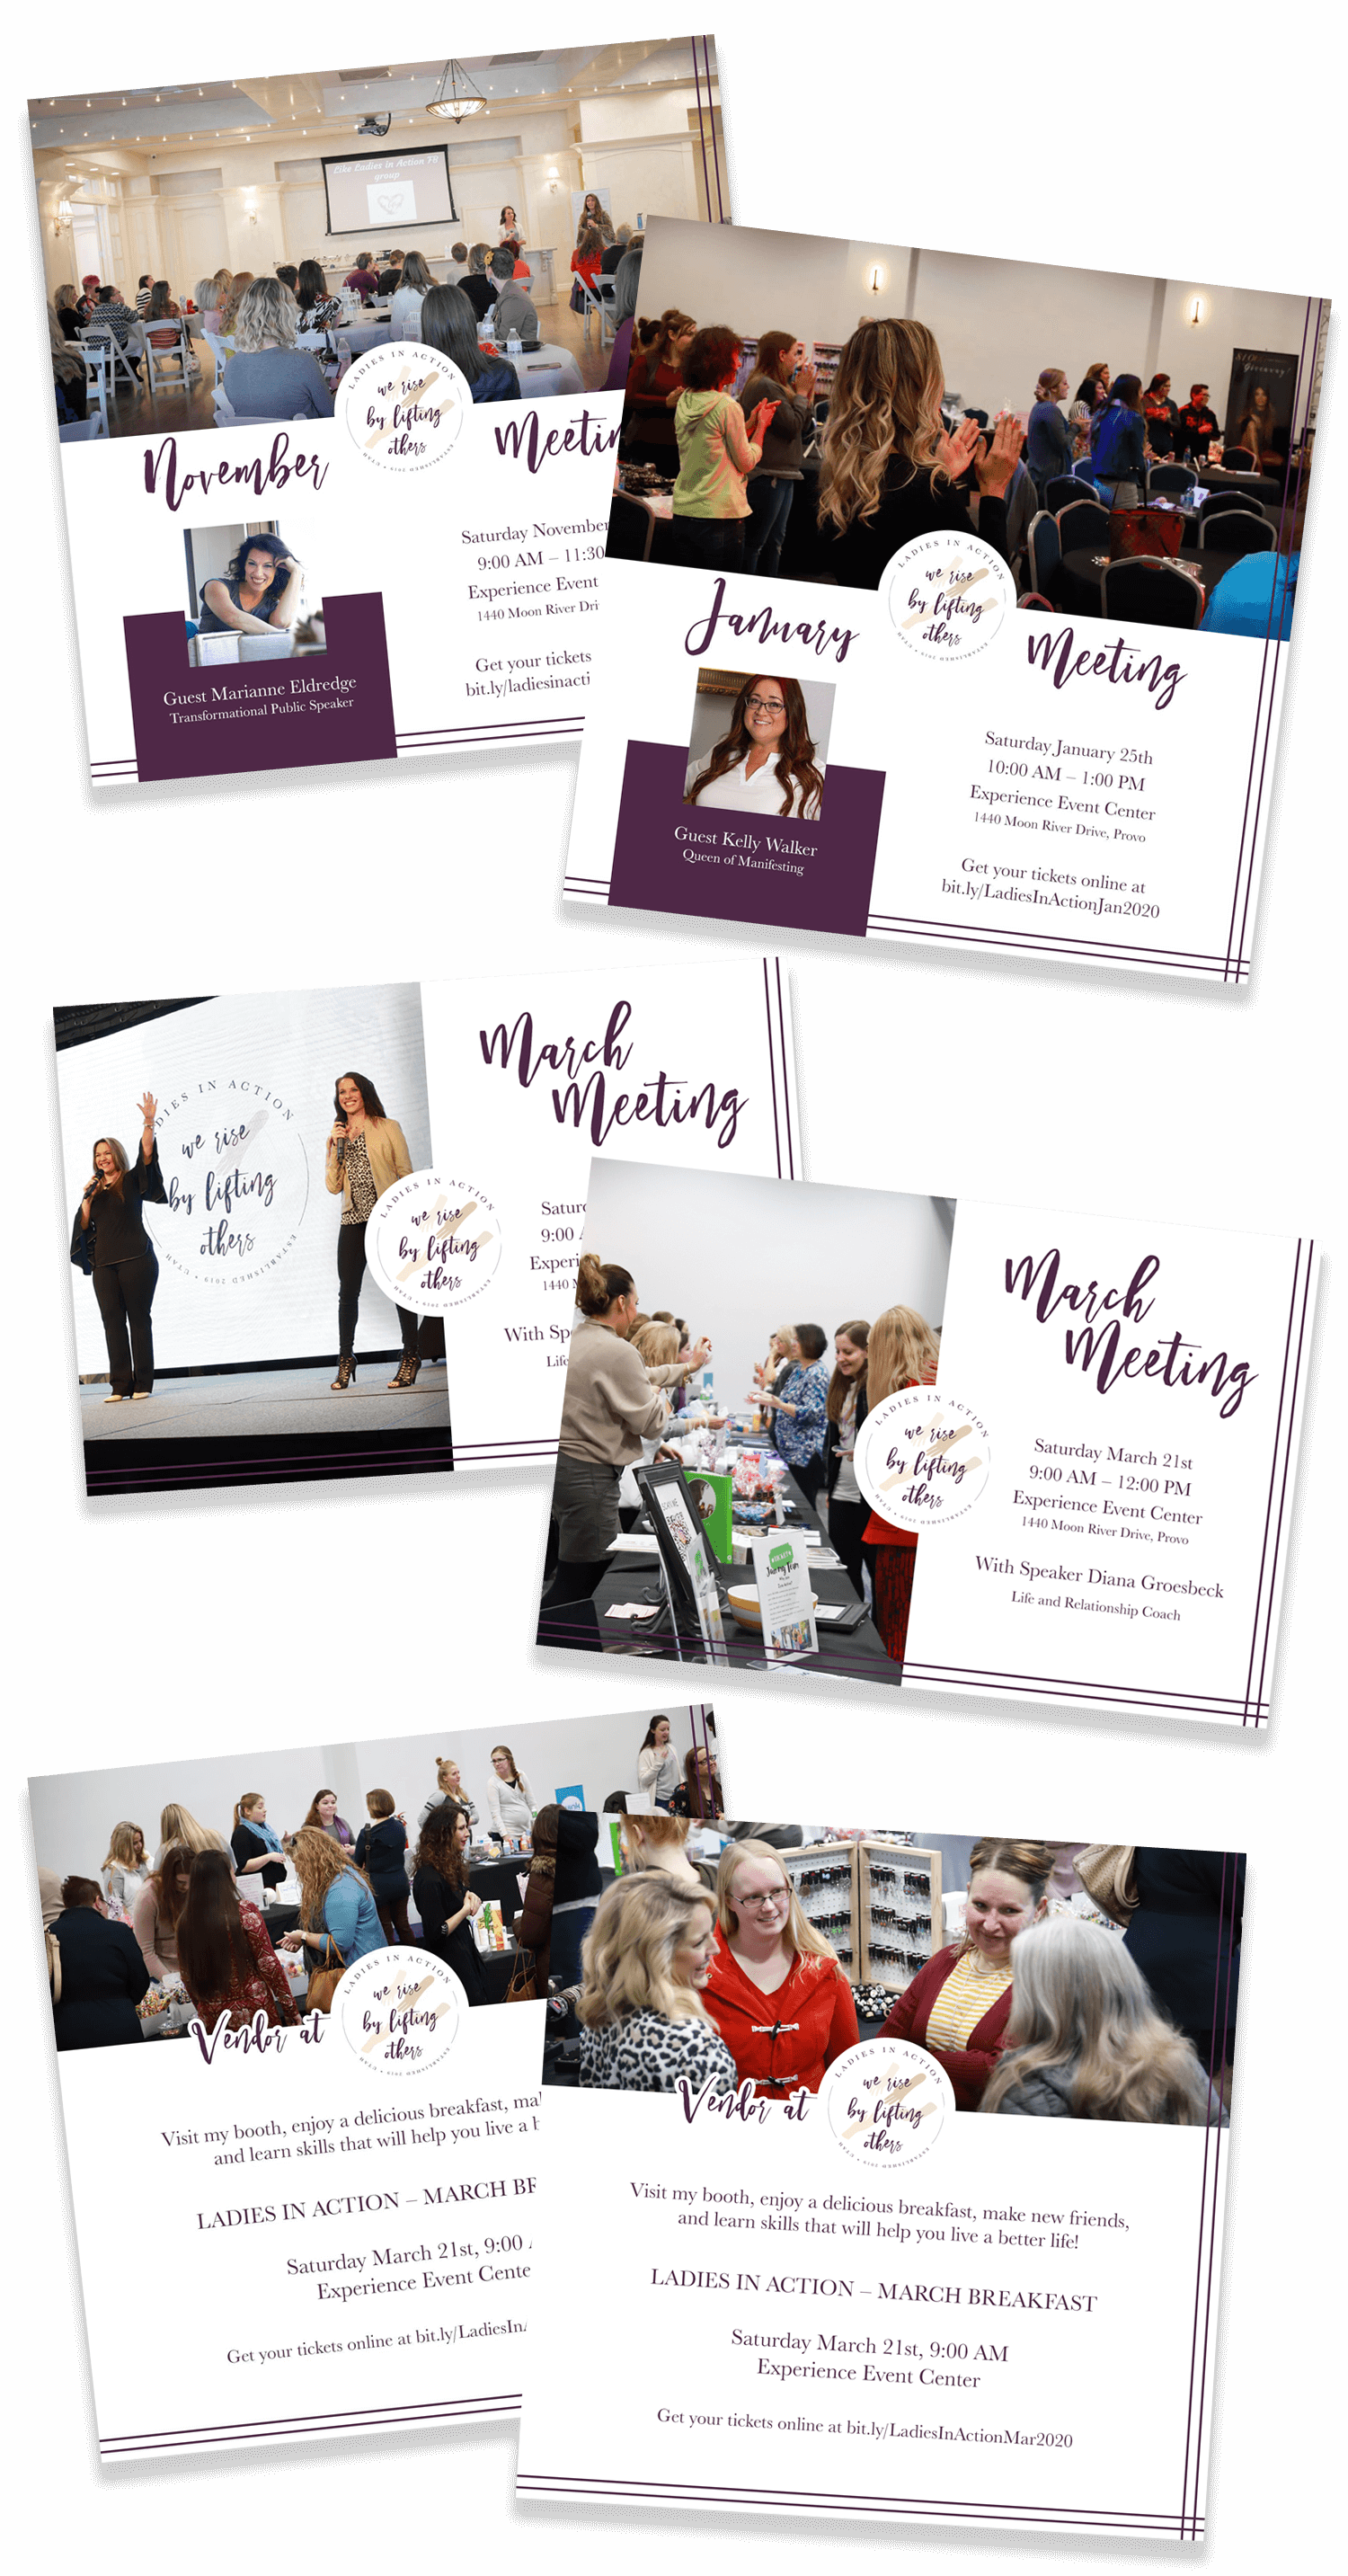 Collage of different invitation graphics for Ladies in Action events. Two graphics are square and feature the guest speaker, two graphics are styled like a horizontal postcard, and the last two graphics are specific for vendors to share.